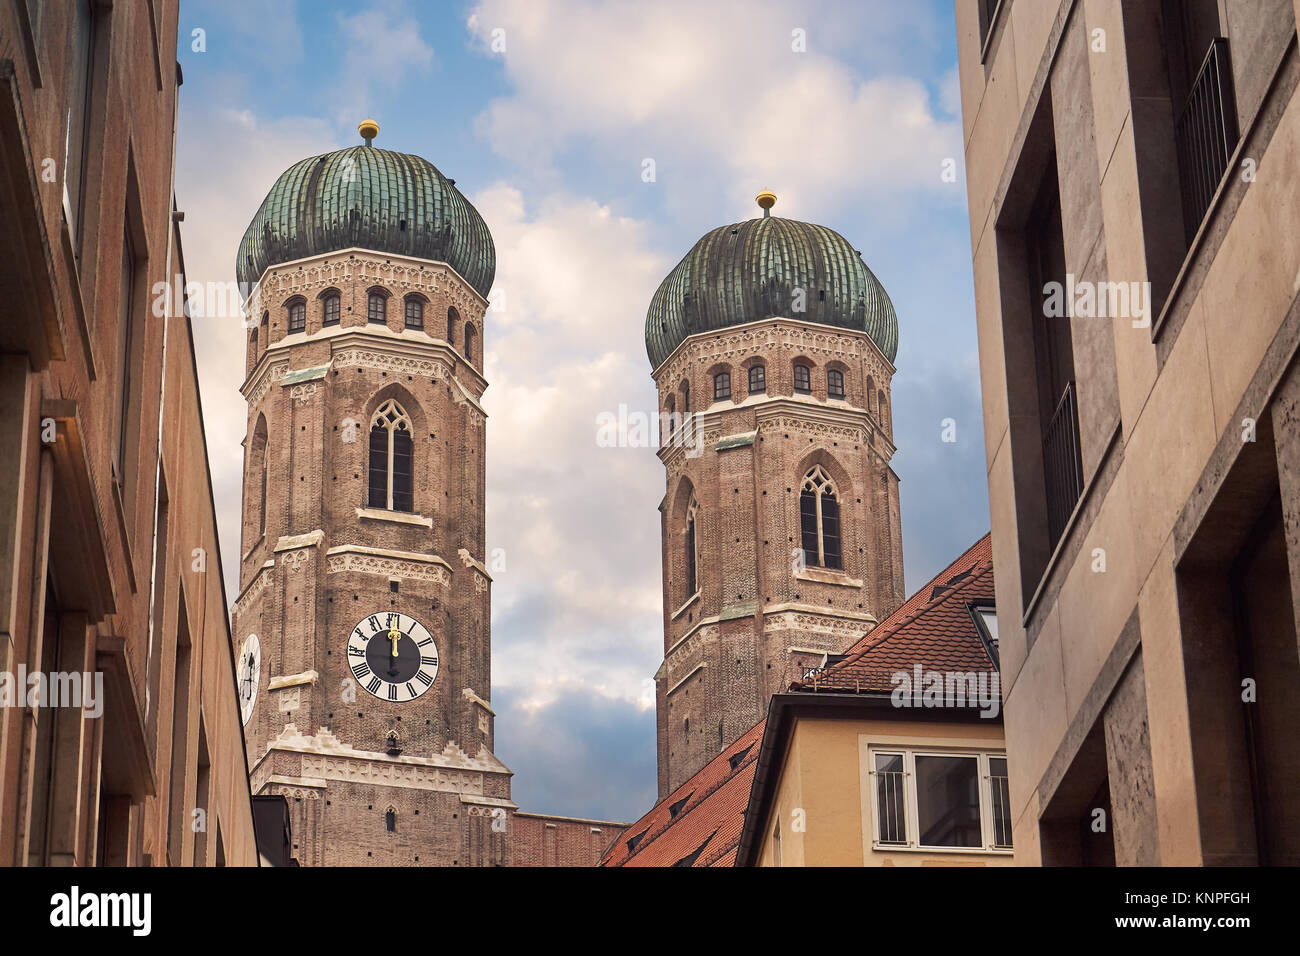 Towers of The  Cathedral of Our Dear Lady (Frauenkirche) in Munich, Germany - Stock Image